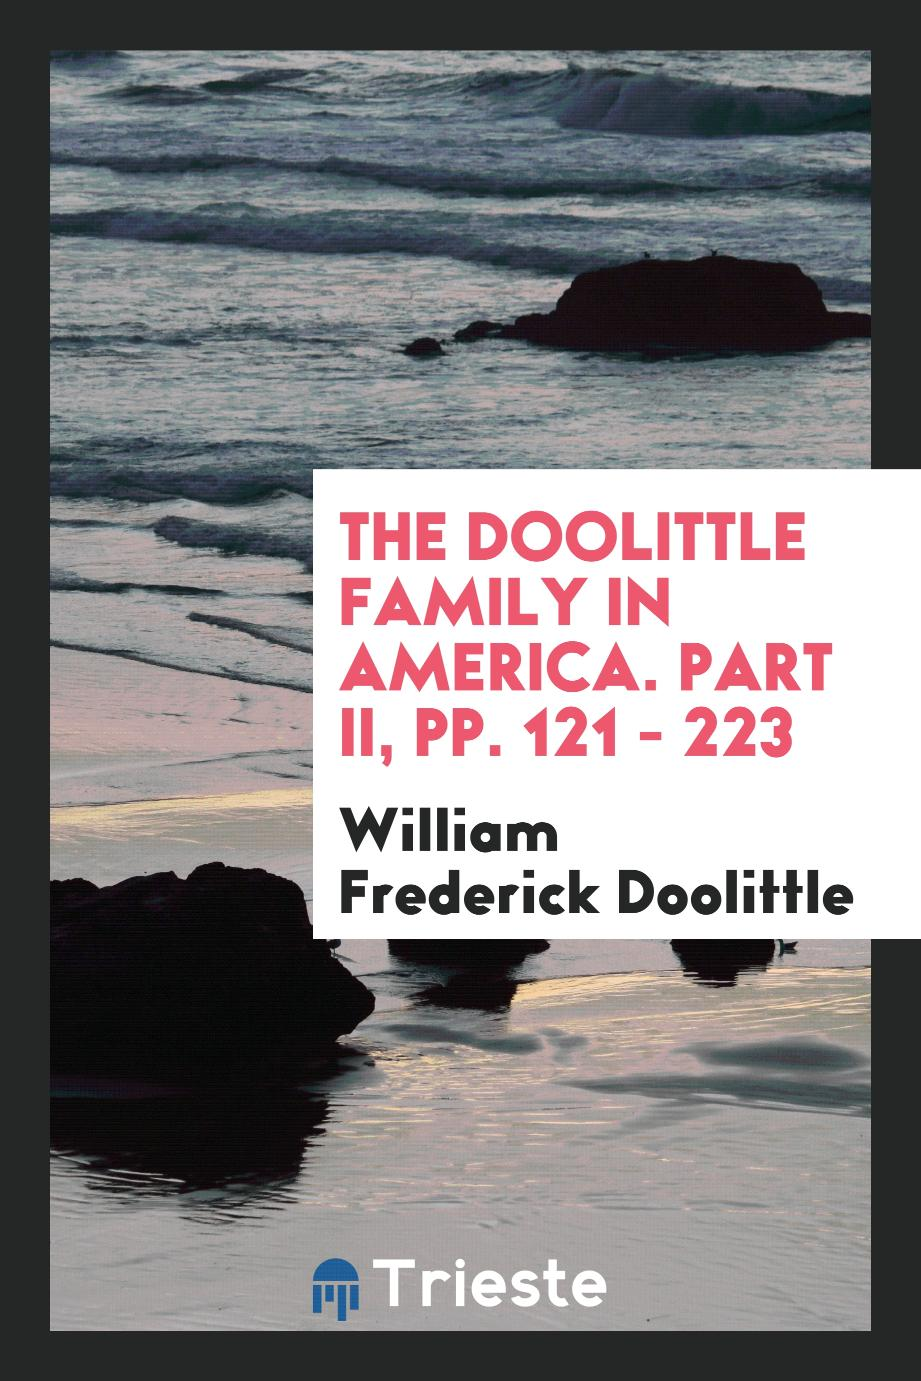 The Doolittle family in America. Part II, pp. 121 - 223